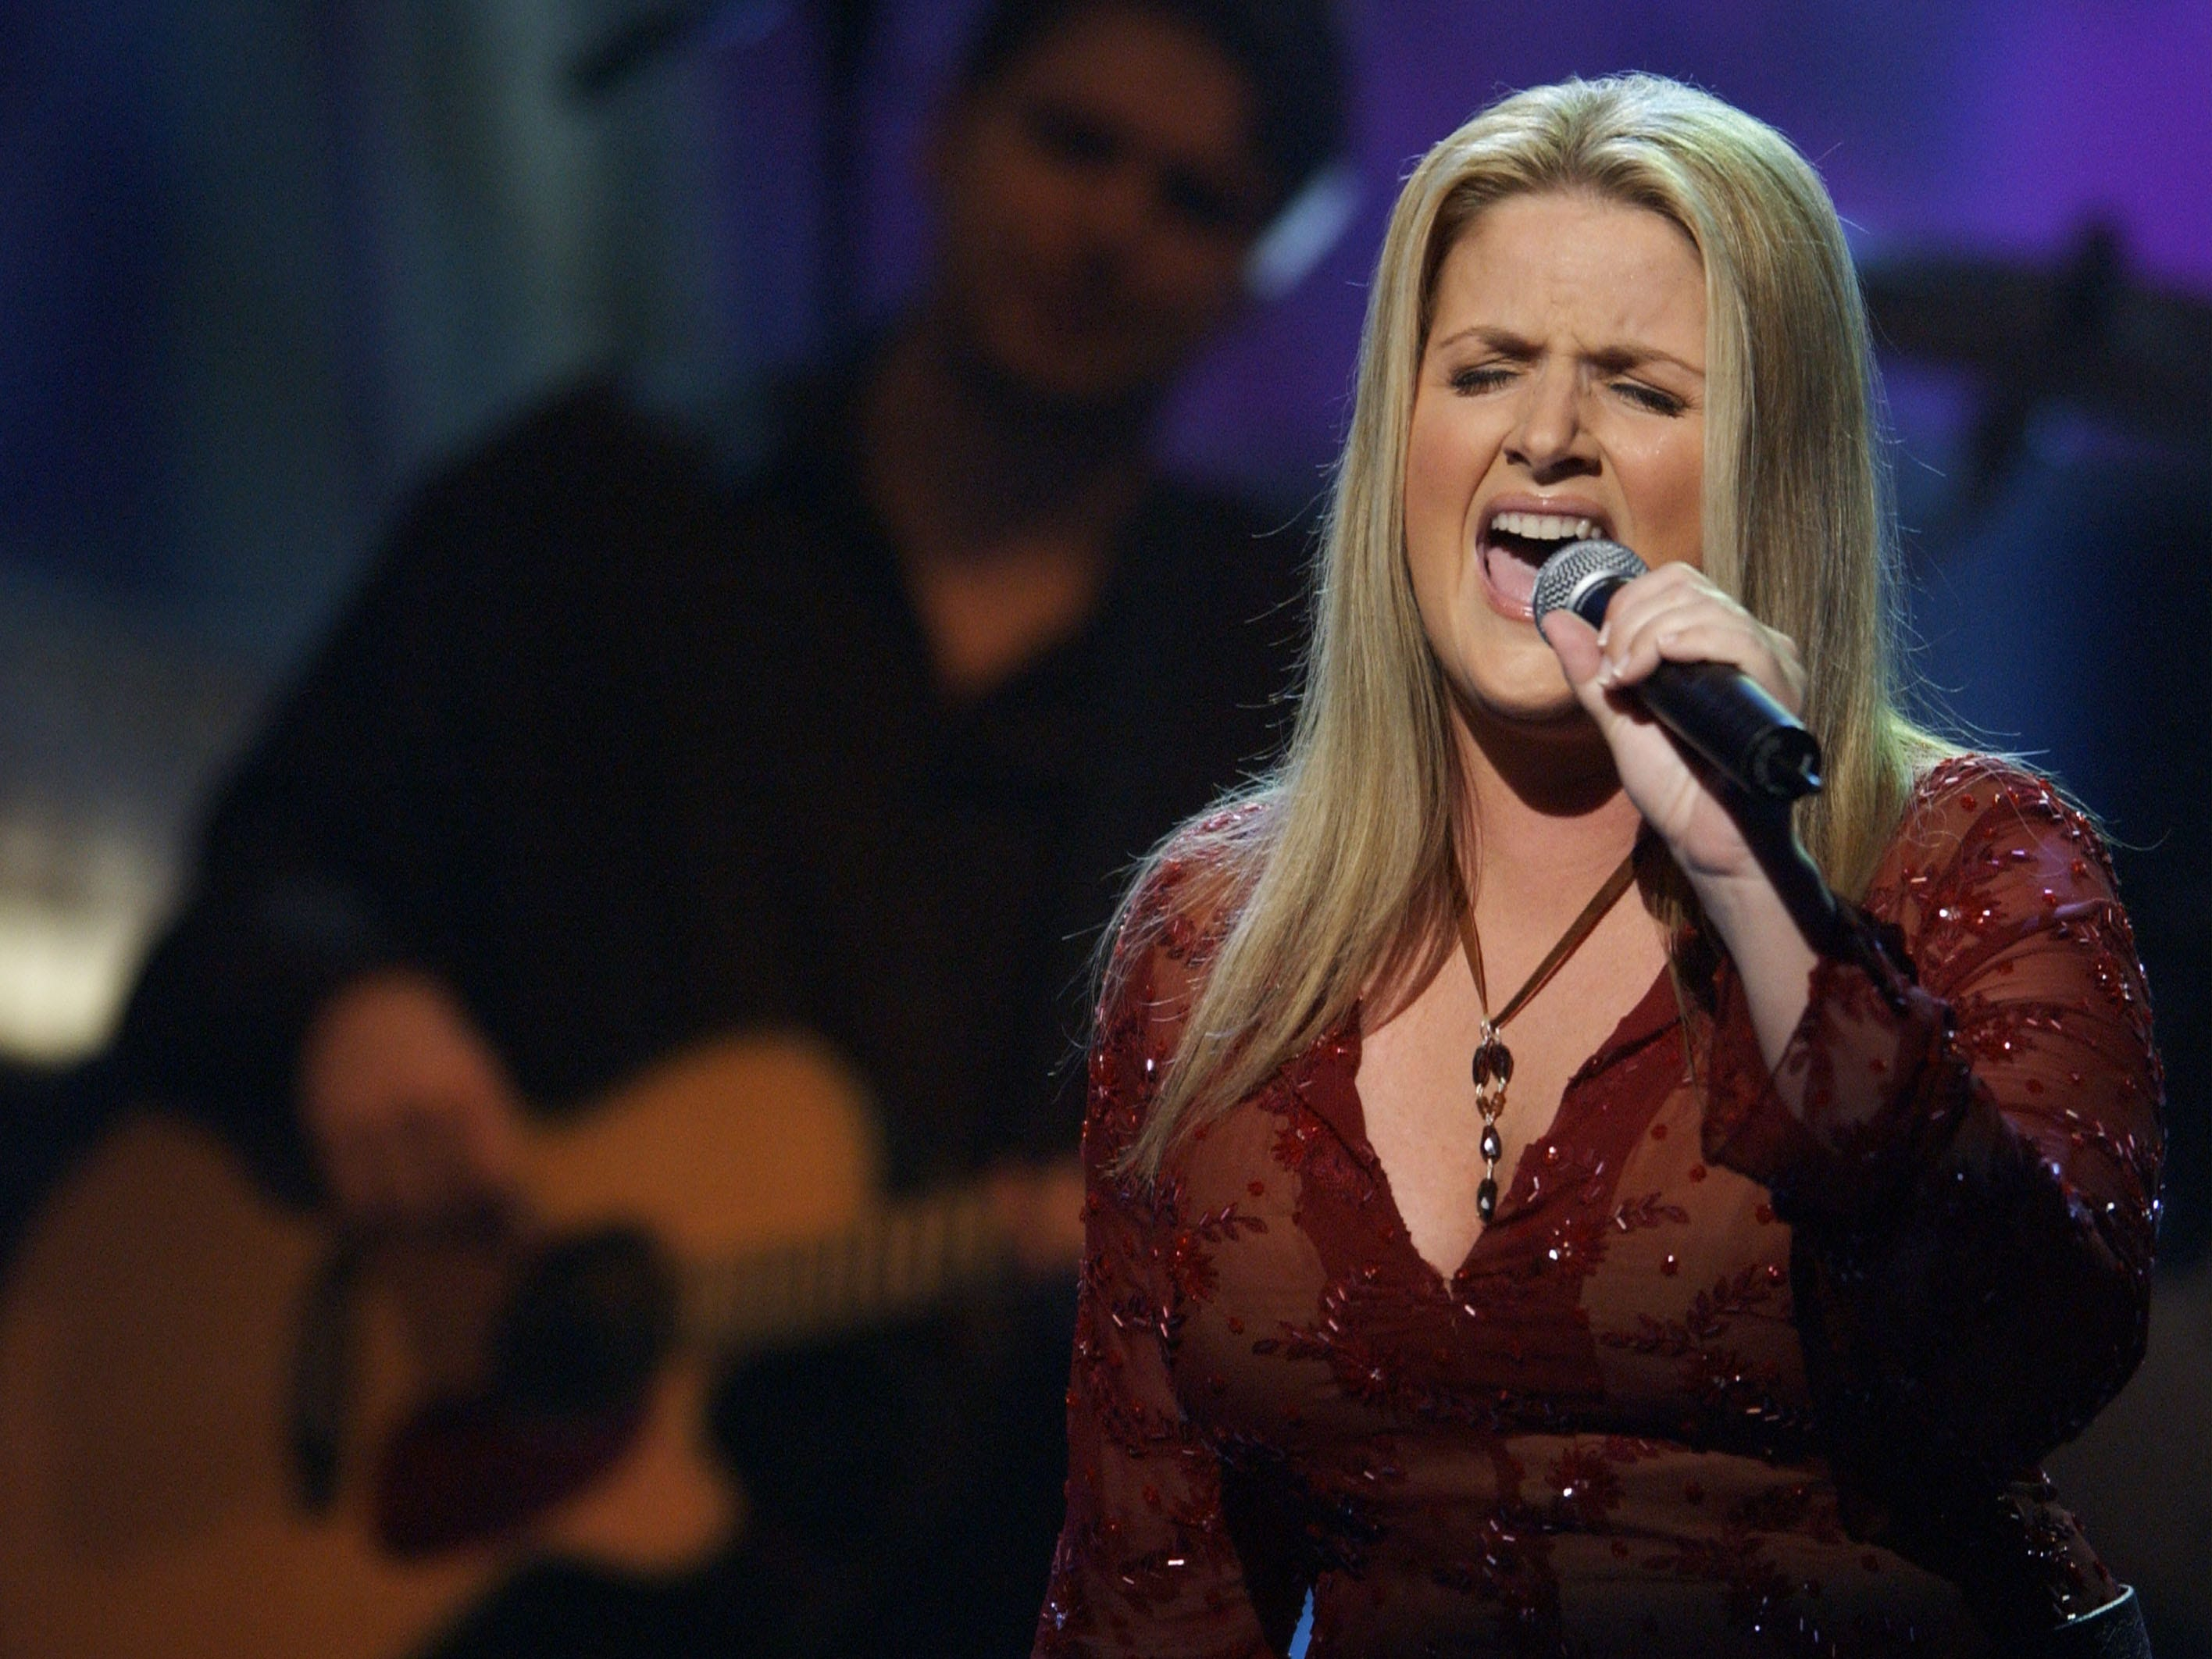 Trisha Yearwood performs onstage during the 37th Annual Academy of Country Music Awards May 22, 2002 at the Universal Amphitheatre in Los Angeles, CA.